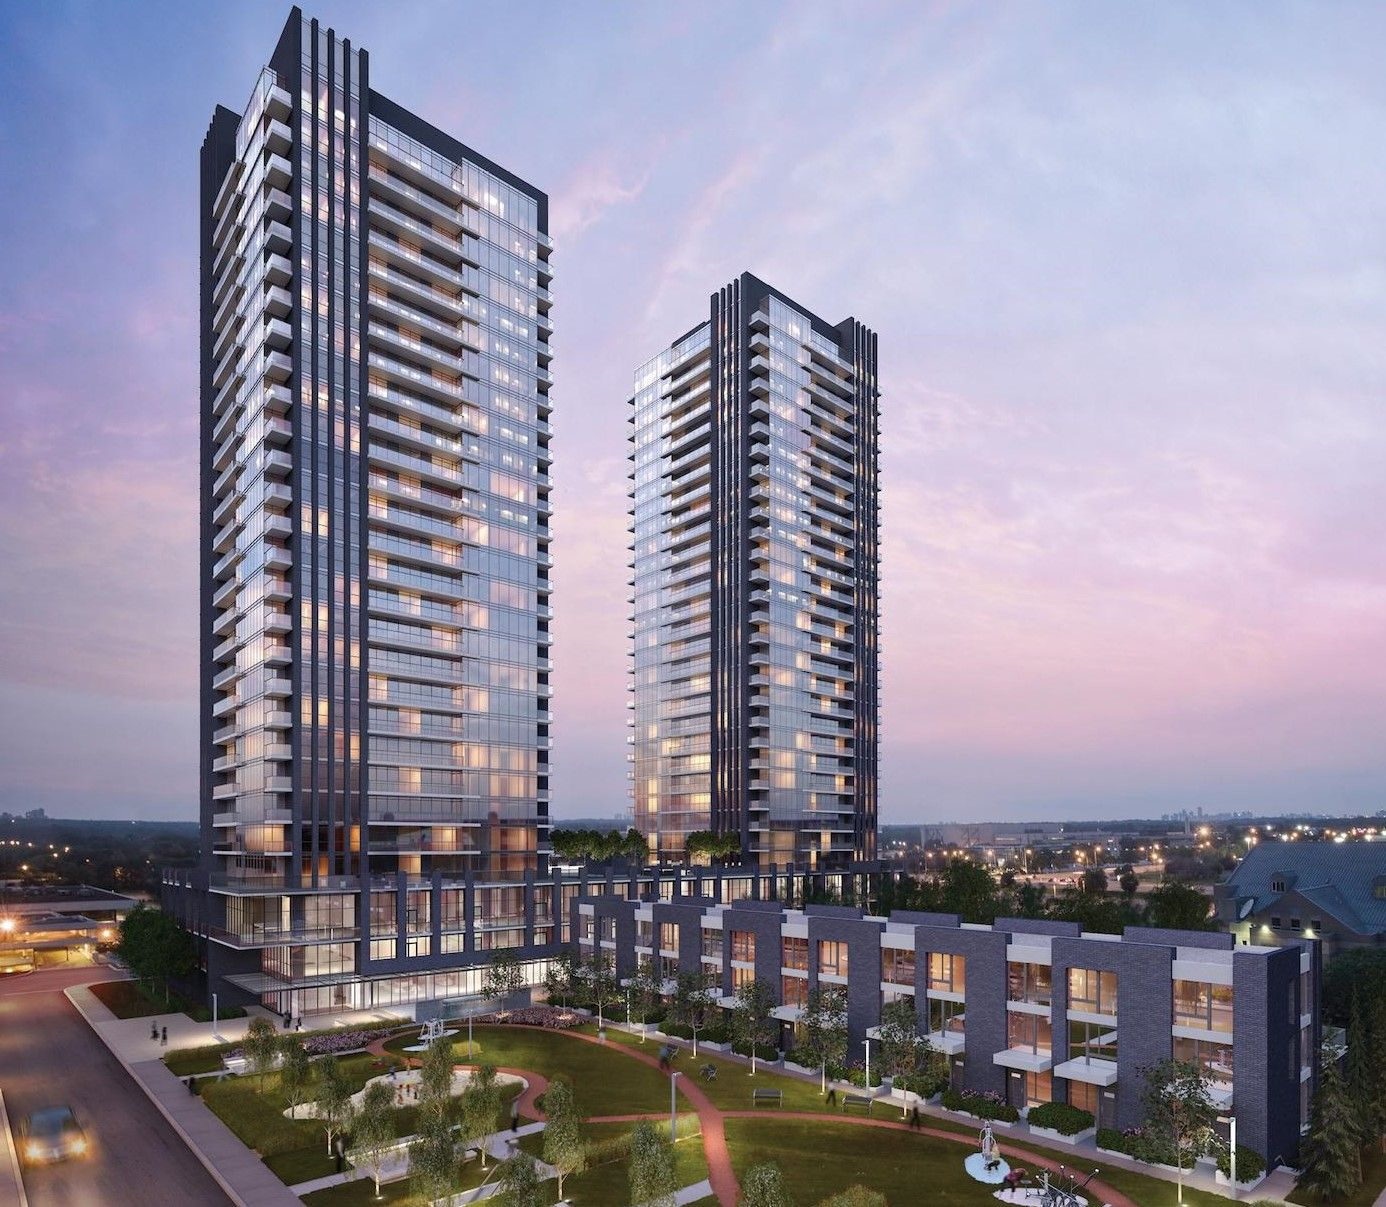 Sonic and Super Sonic Condos  at 2-6 Sonic Way & 20 Ferrand Dr. This condo is located in  North York, Toronto